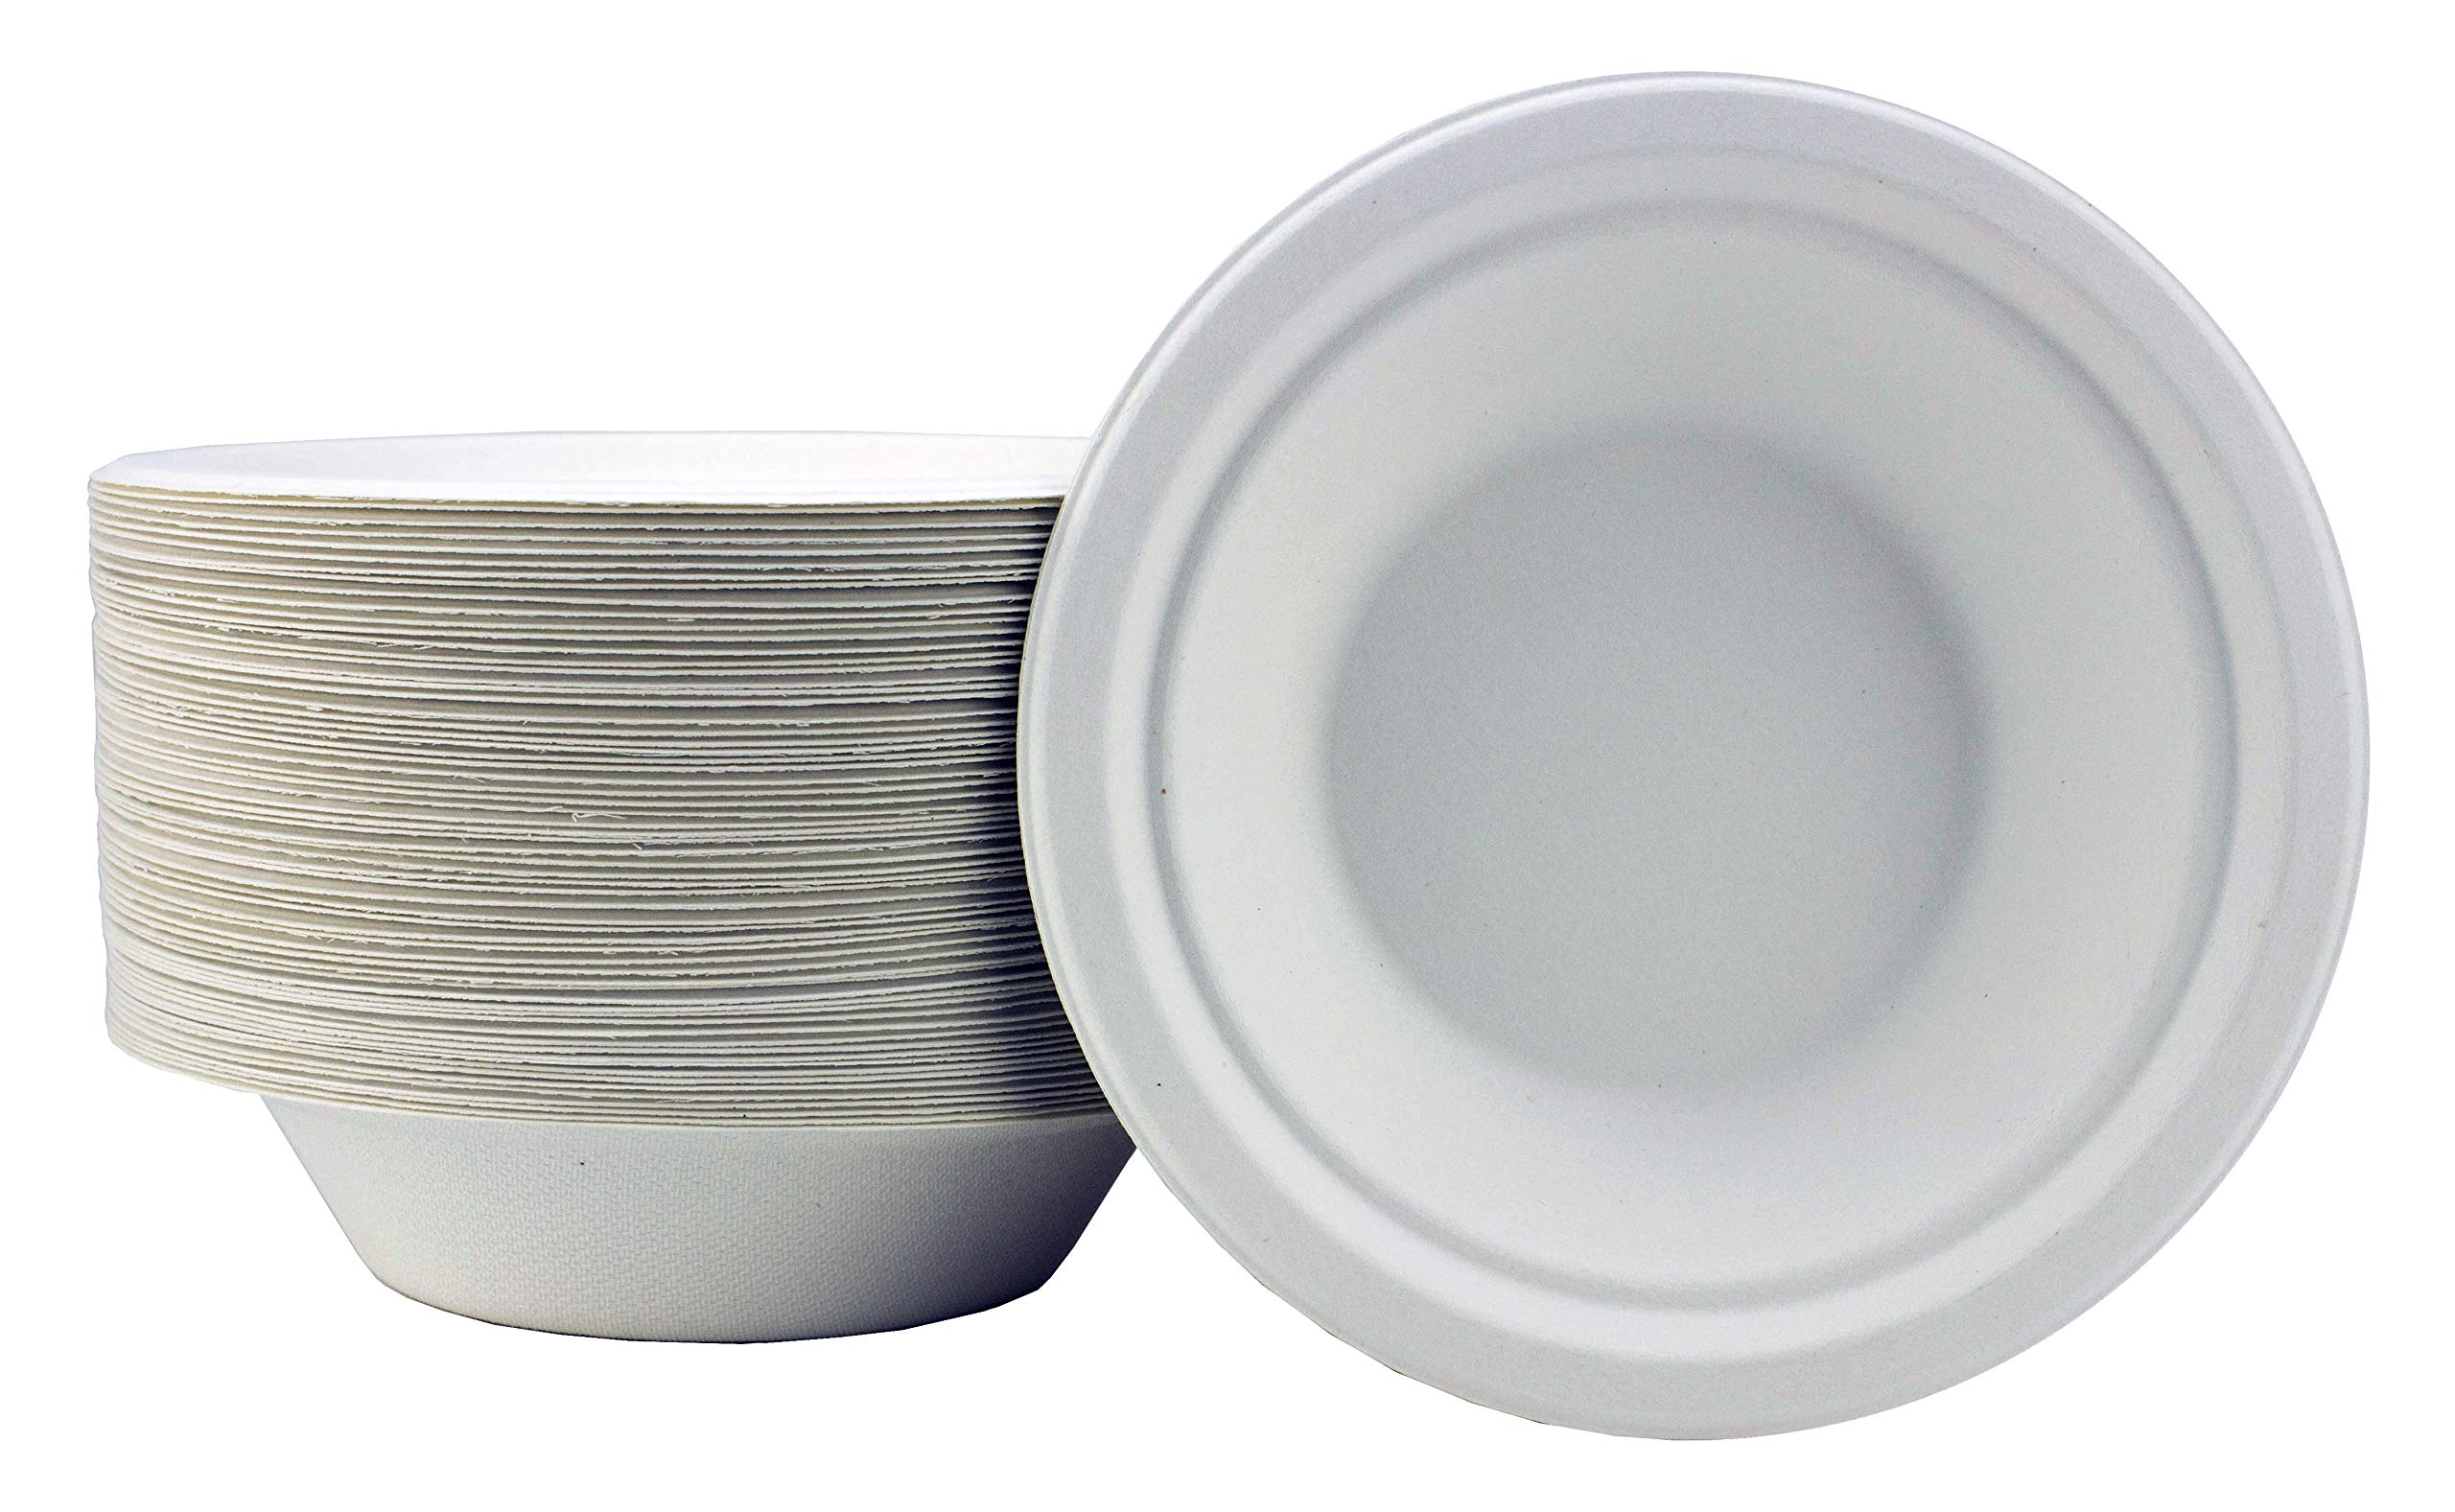 Disposable Biodegradable Bowls Compostable Bowls Strong Disposable Bowls 400ml Bowls Eco Friendly Bowls Super Rigid Strong Bowls == Pack of 50